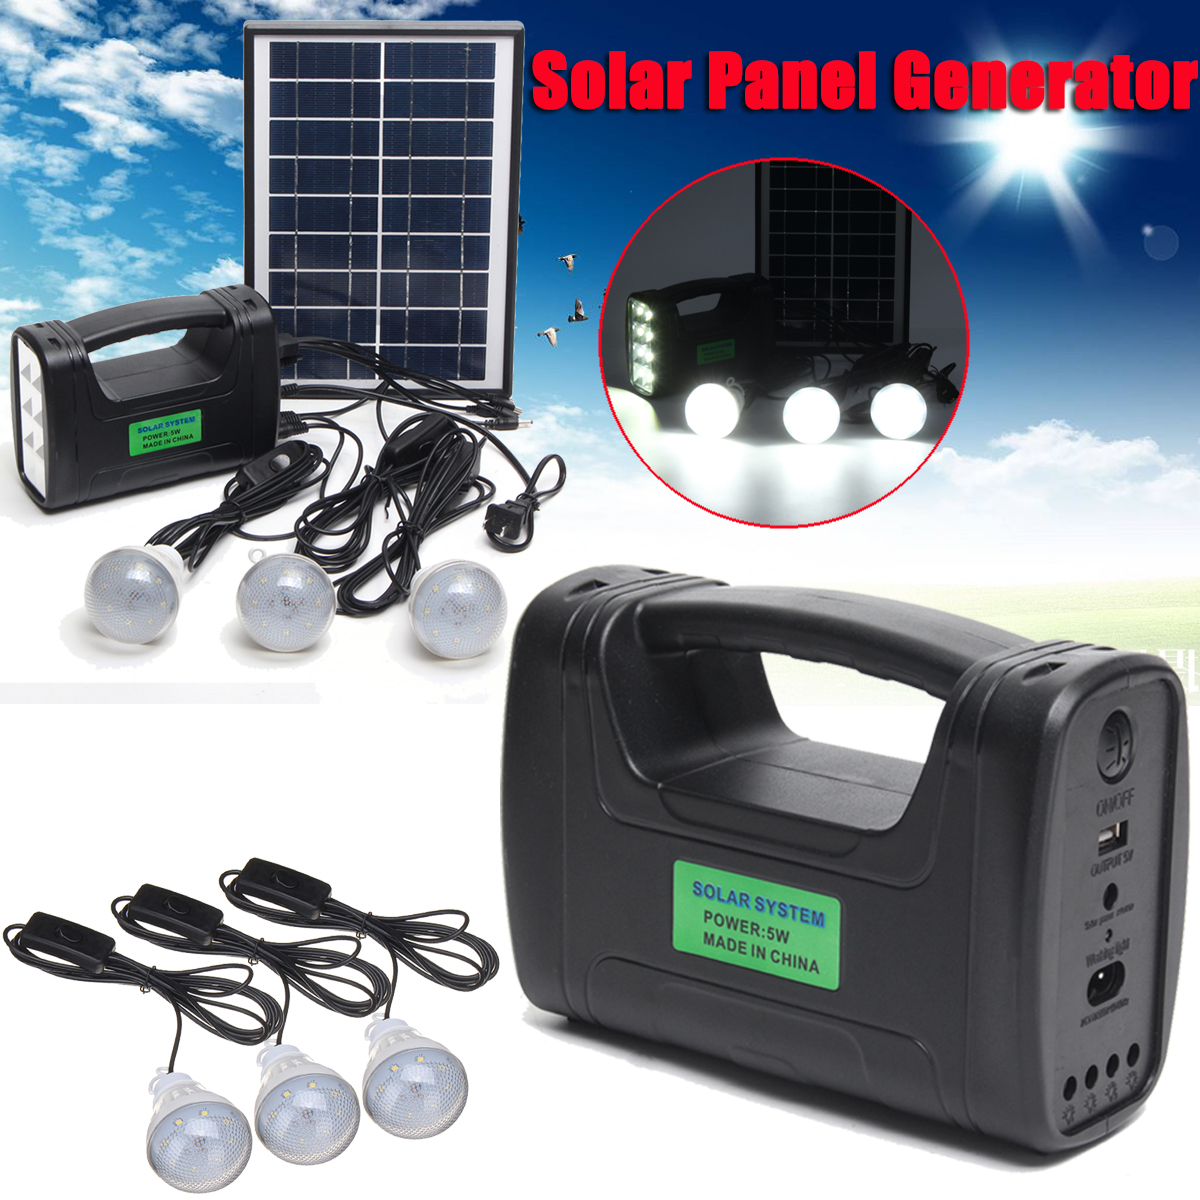 купить 110-220V Portable Home Outdoor Small Solar Panels Charging Generator Power System 5W Mini Outdoor Power LED Lighting System онлайн